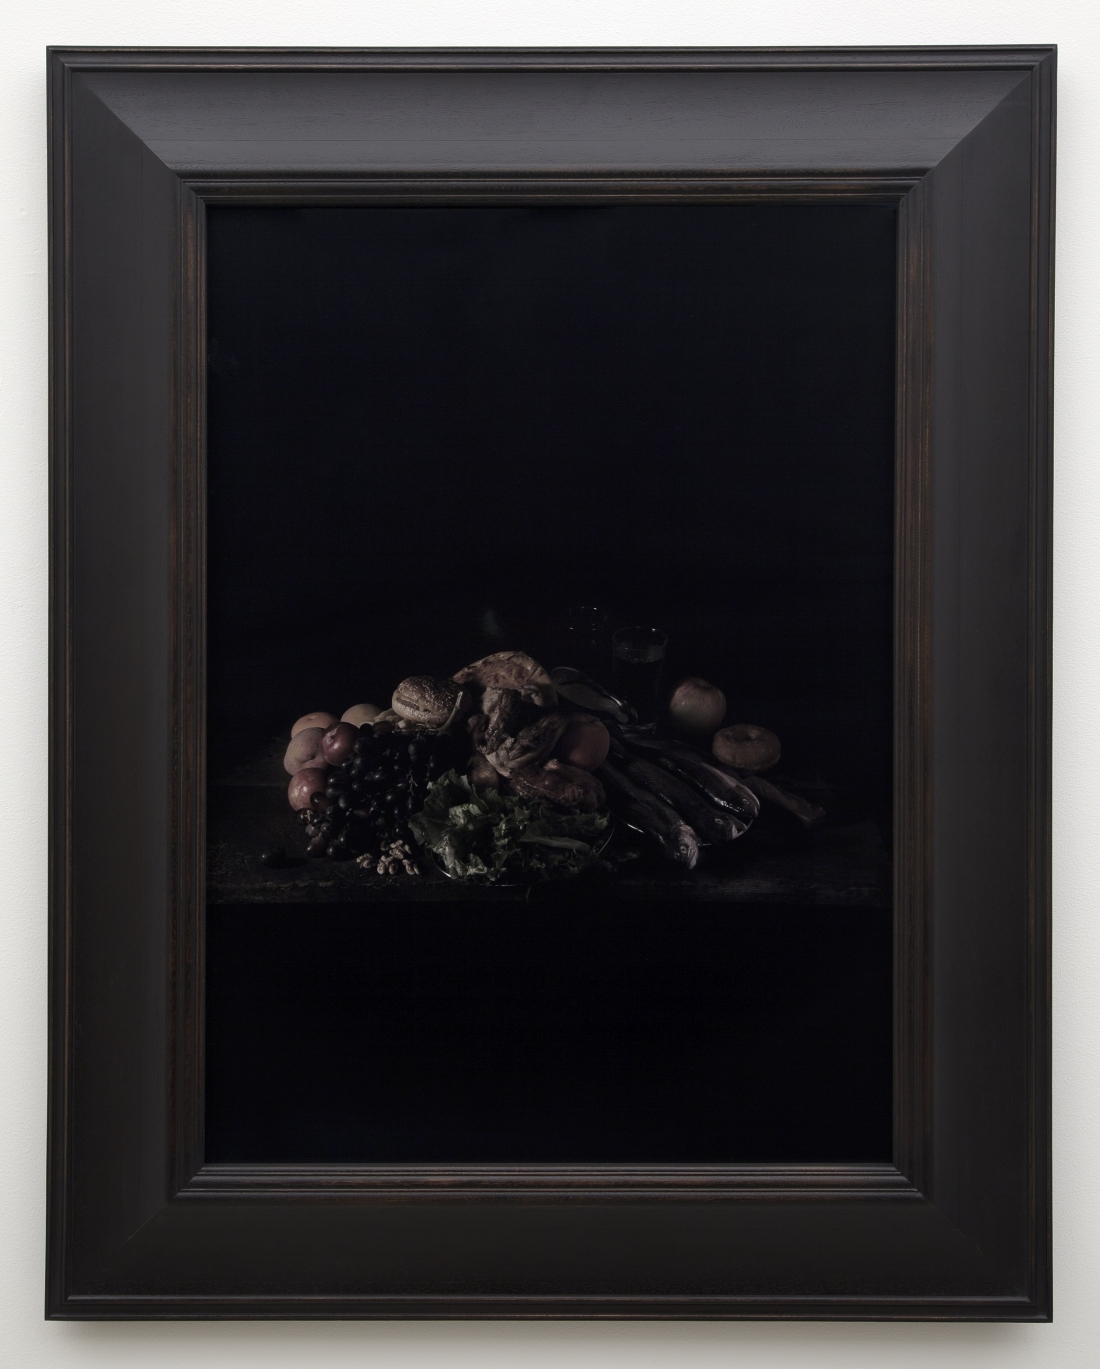 Mat Collishaw, Last Meal on Death Row, Texas (Juan Soria), 2011, C-type photographic print, Frame Red Grandis timber, rubbed back with black lacquer finish, 89 x 64 cm (35 x 25 ¼ in).